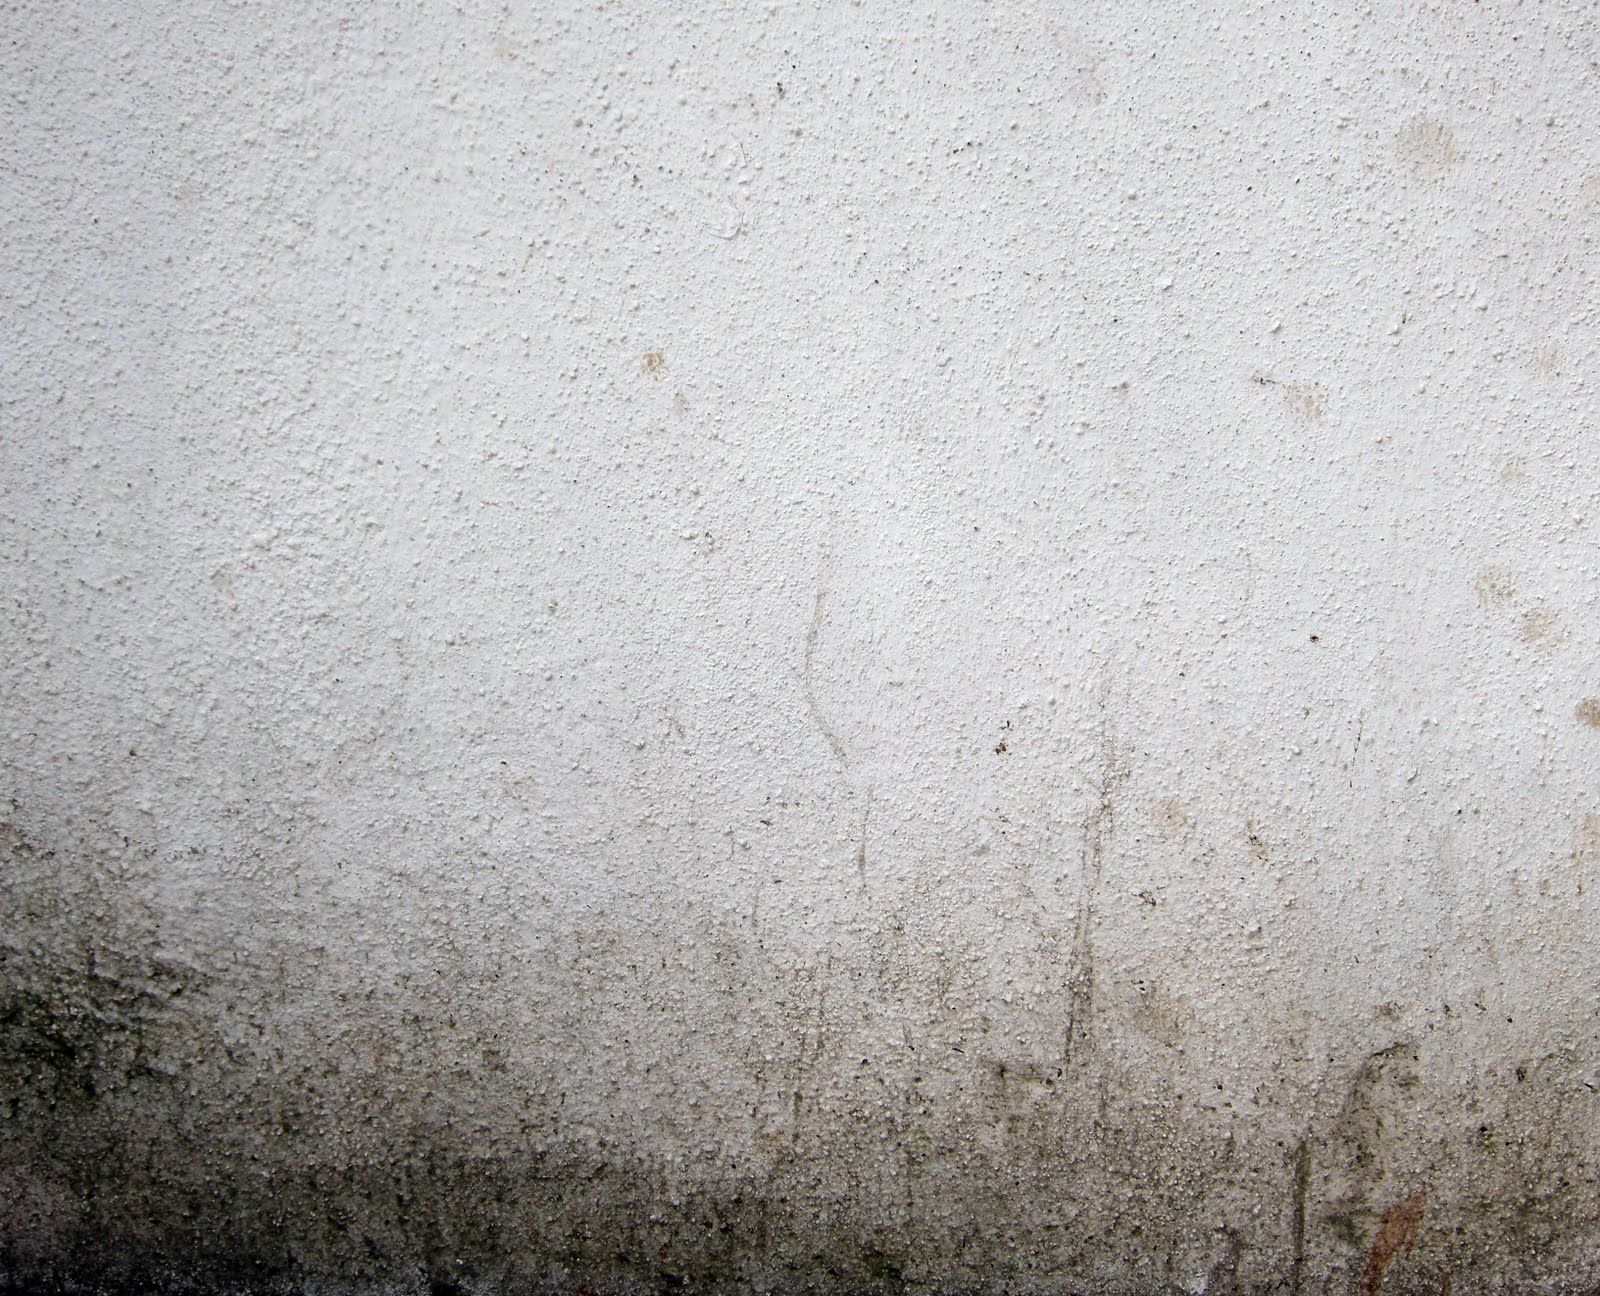 Office Paint Dirty White Wall Texture Plaster And Stucco Wall Leaves